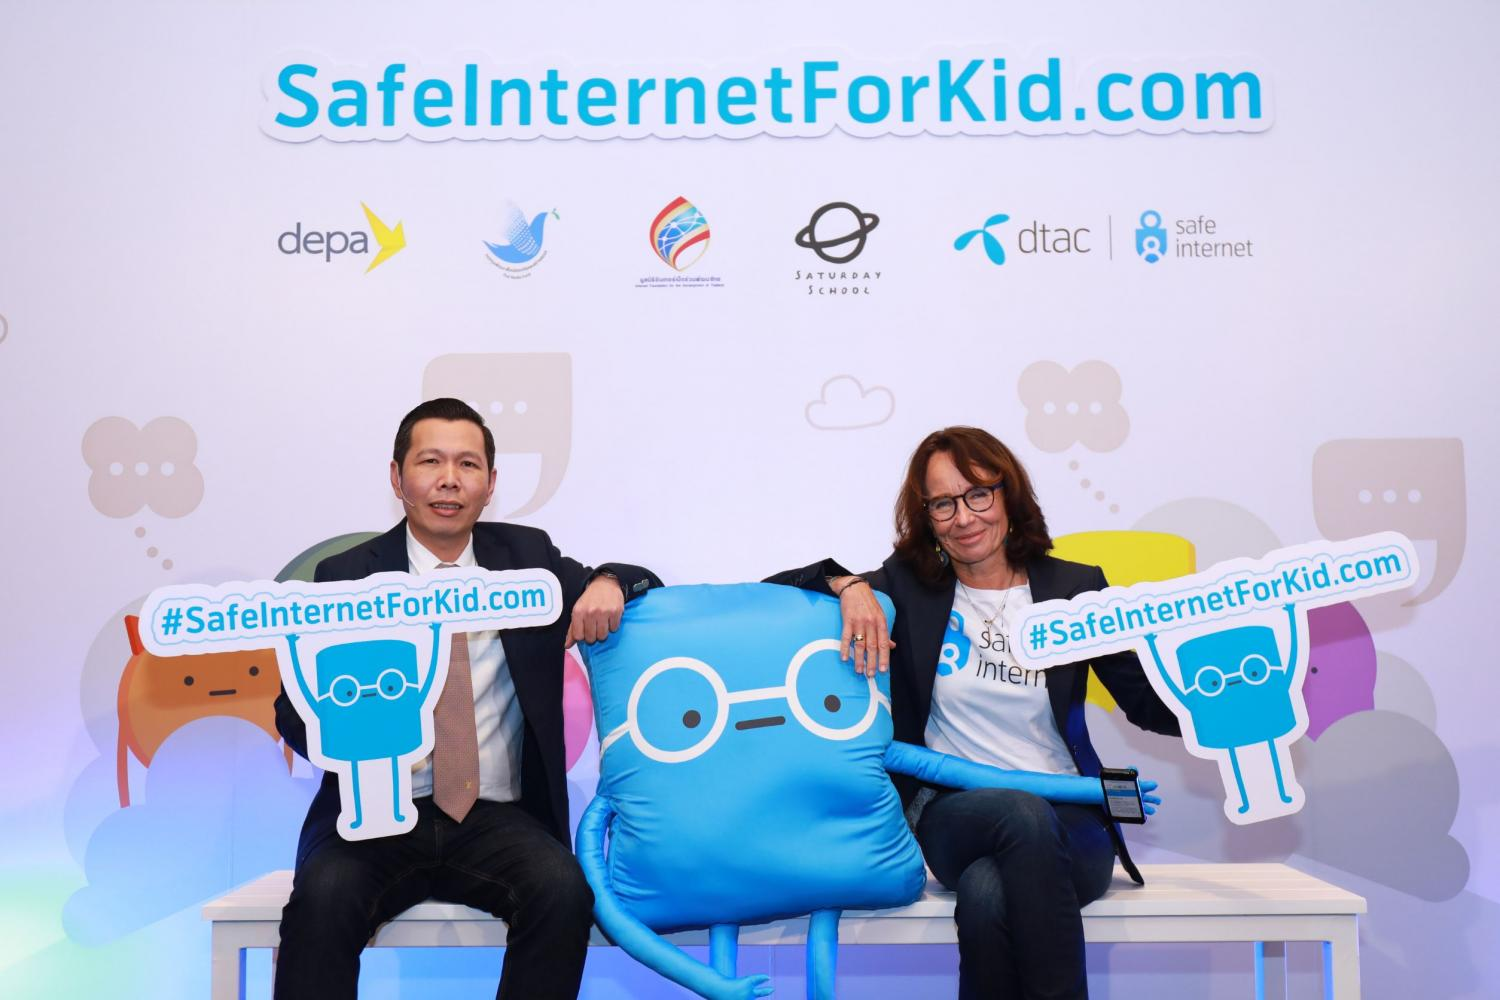 DEPA president Nattapon Nimmanpatcharin and DTAC chief executive Alexandra Reich (right) promote SafeInternetForKid.com. *No photo credit*